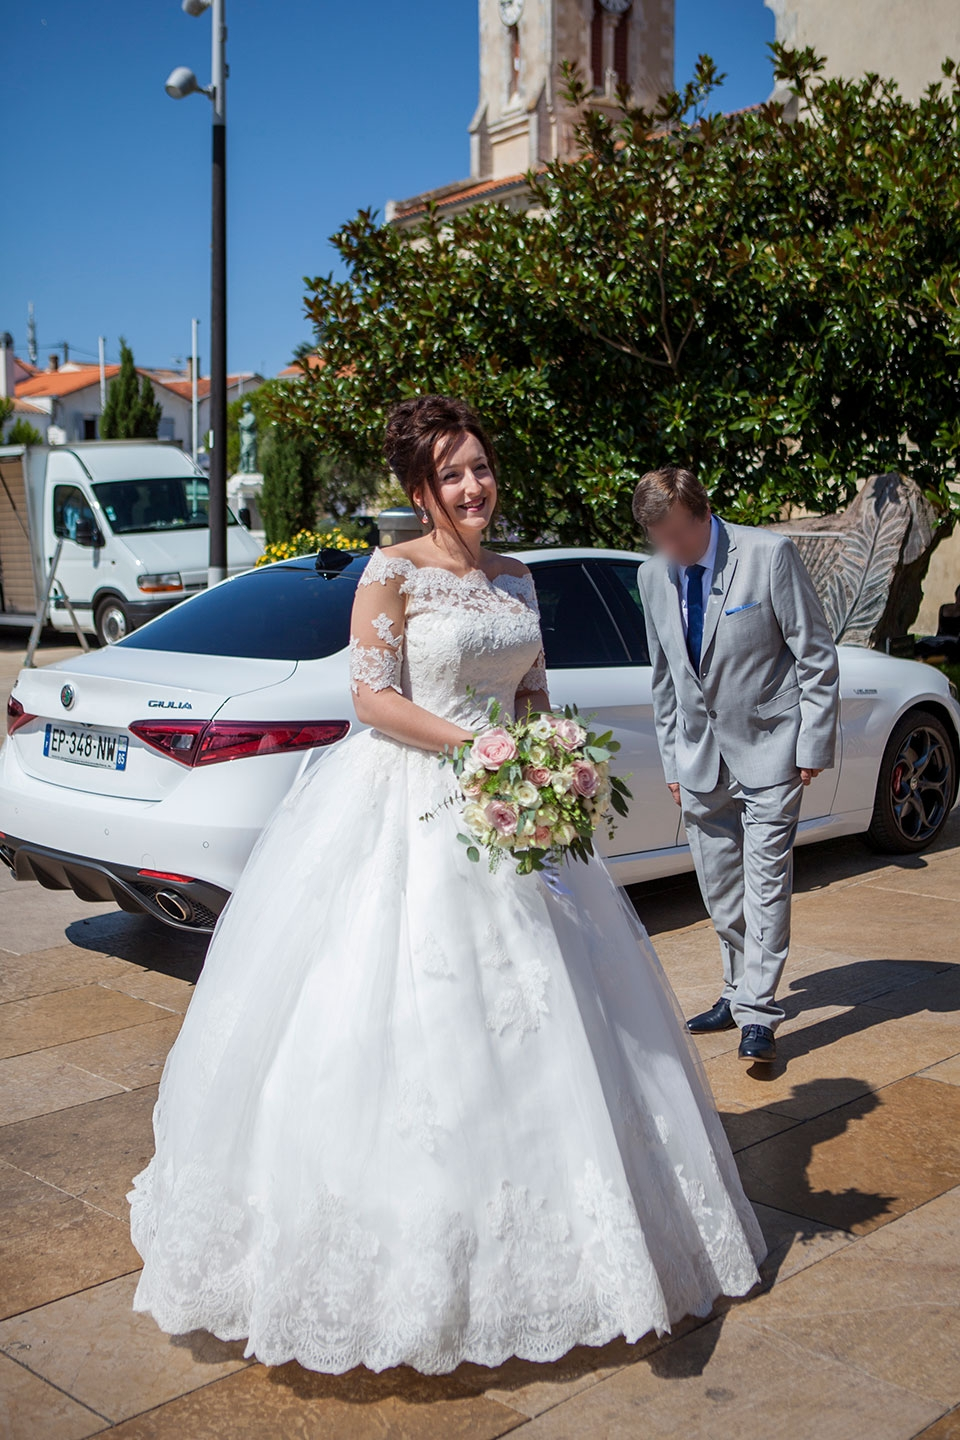 particuliers-evenements-mariage-oui-tiphaine&rudy-19